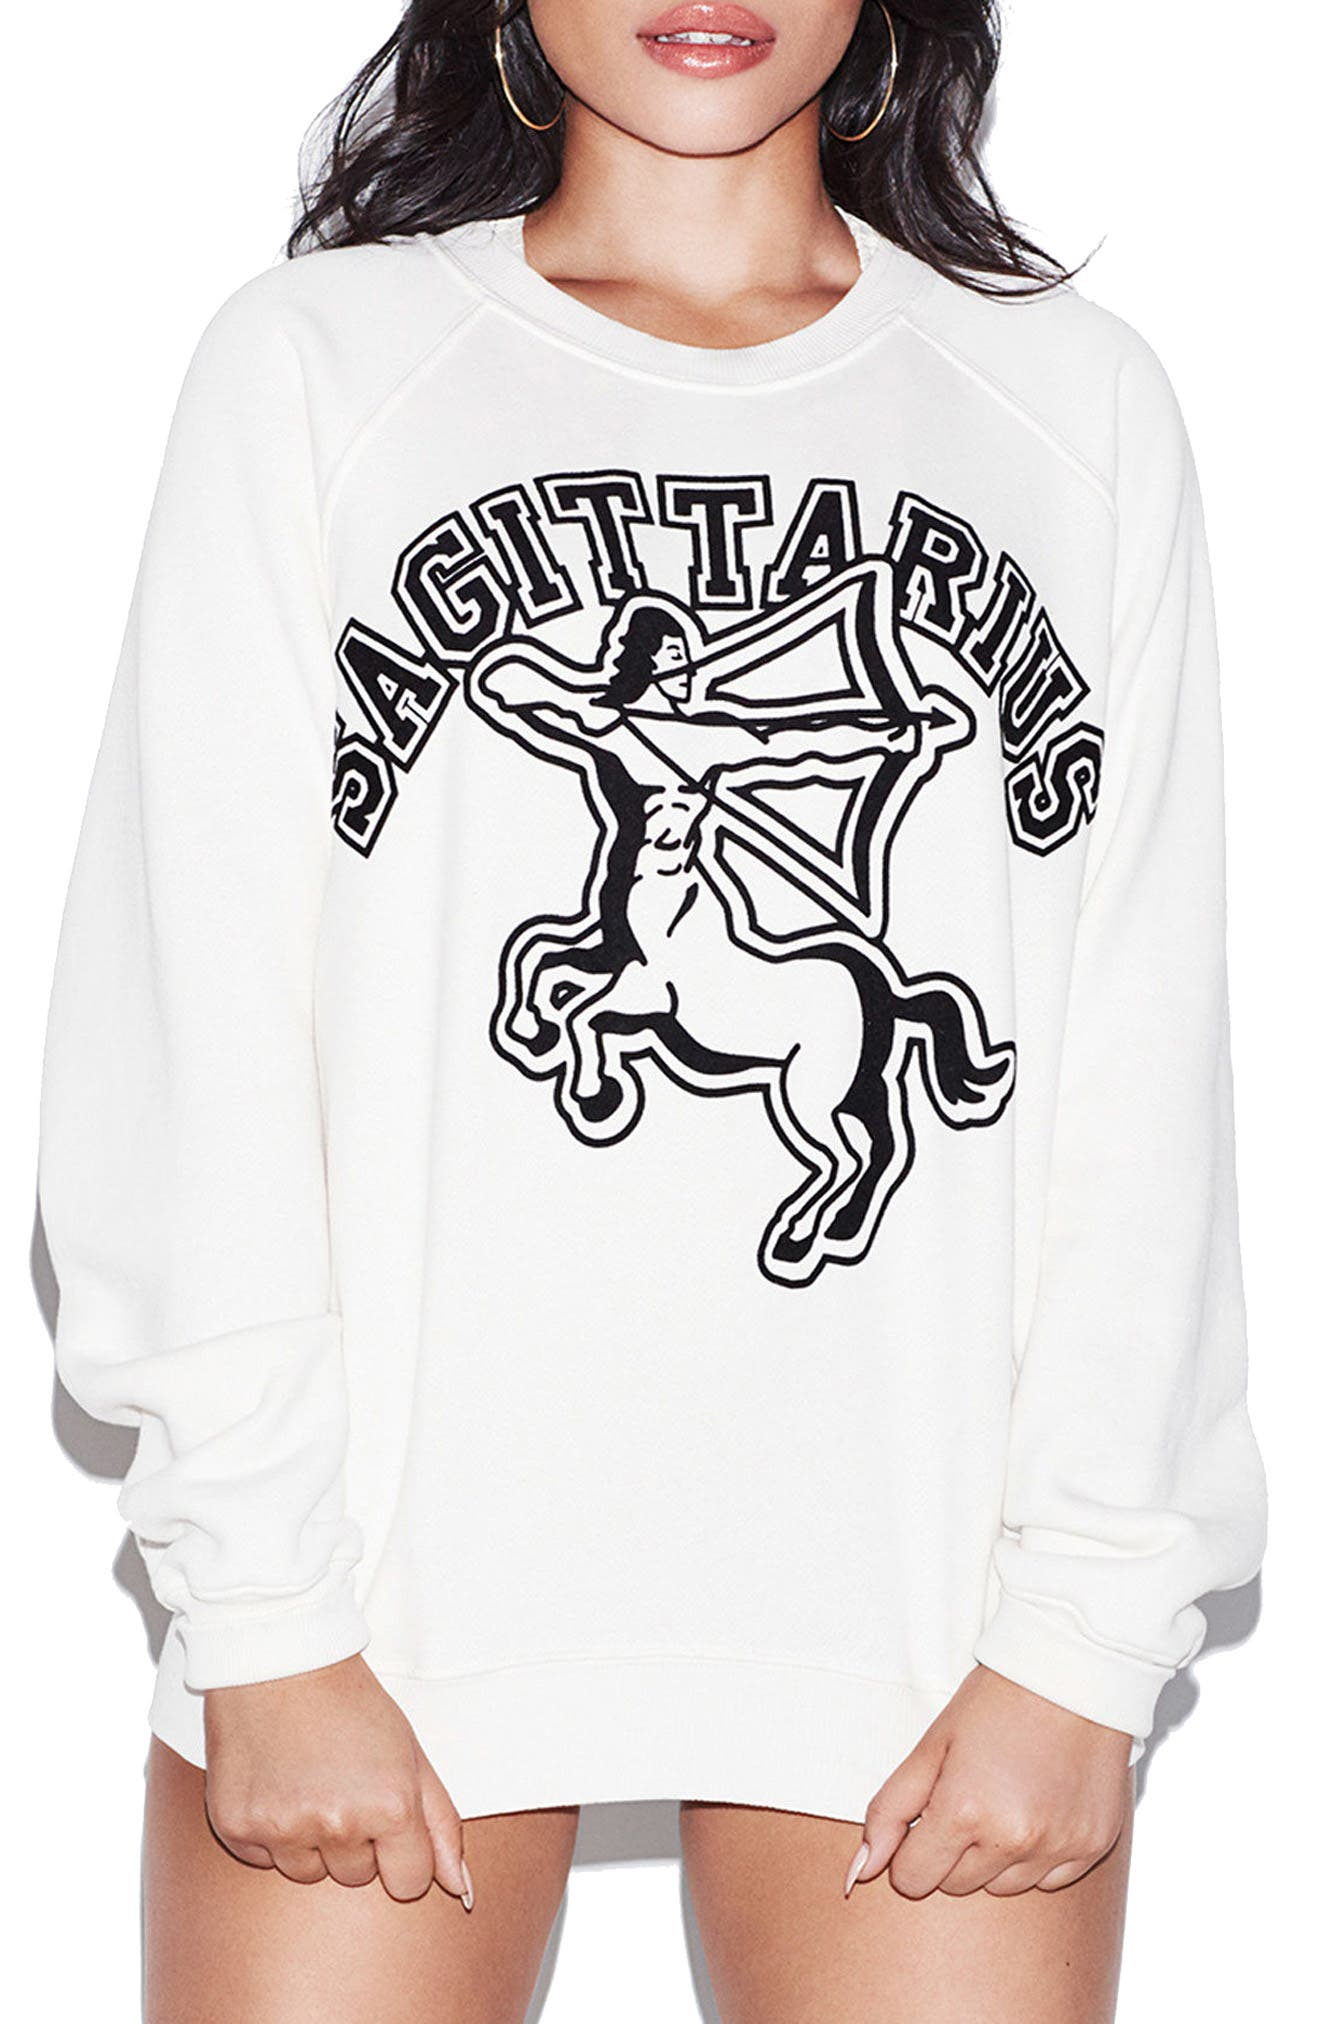 Alternate Image 1 Selected - Good American Horoscope Sweatshirt (Limited Edition) (Extended Sizes)